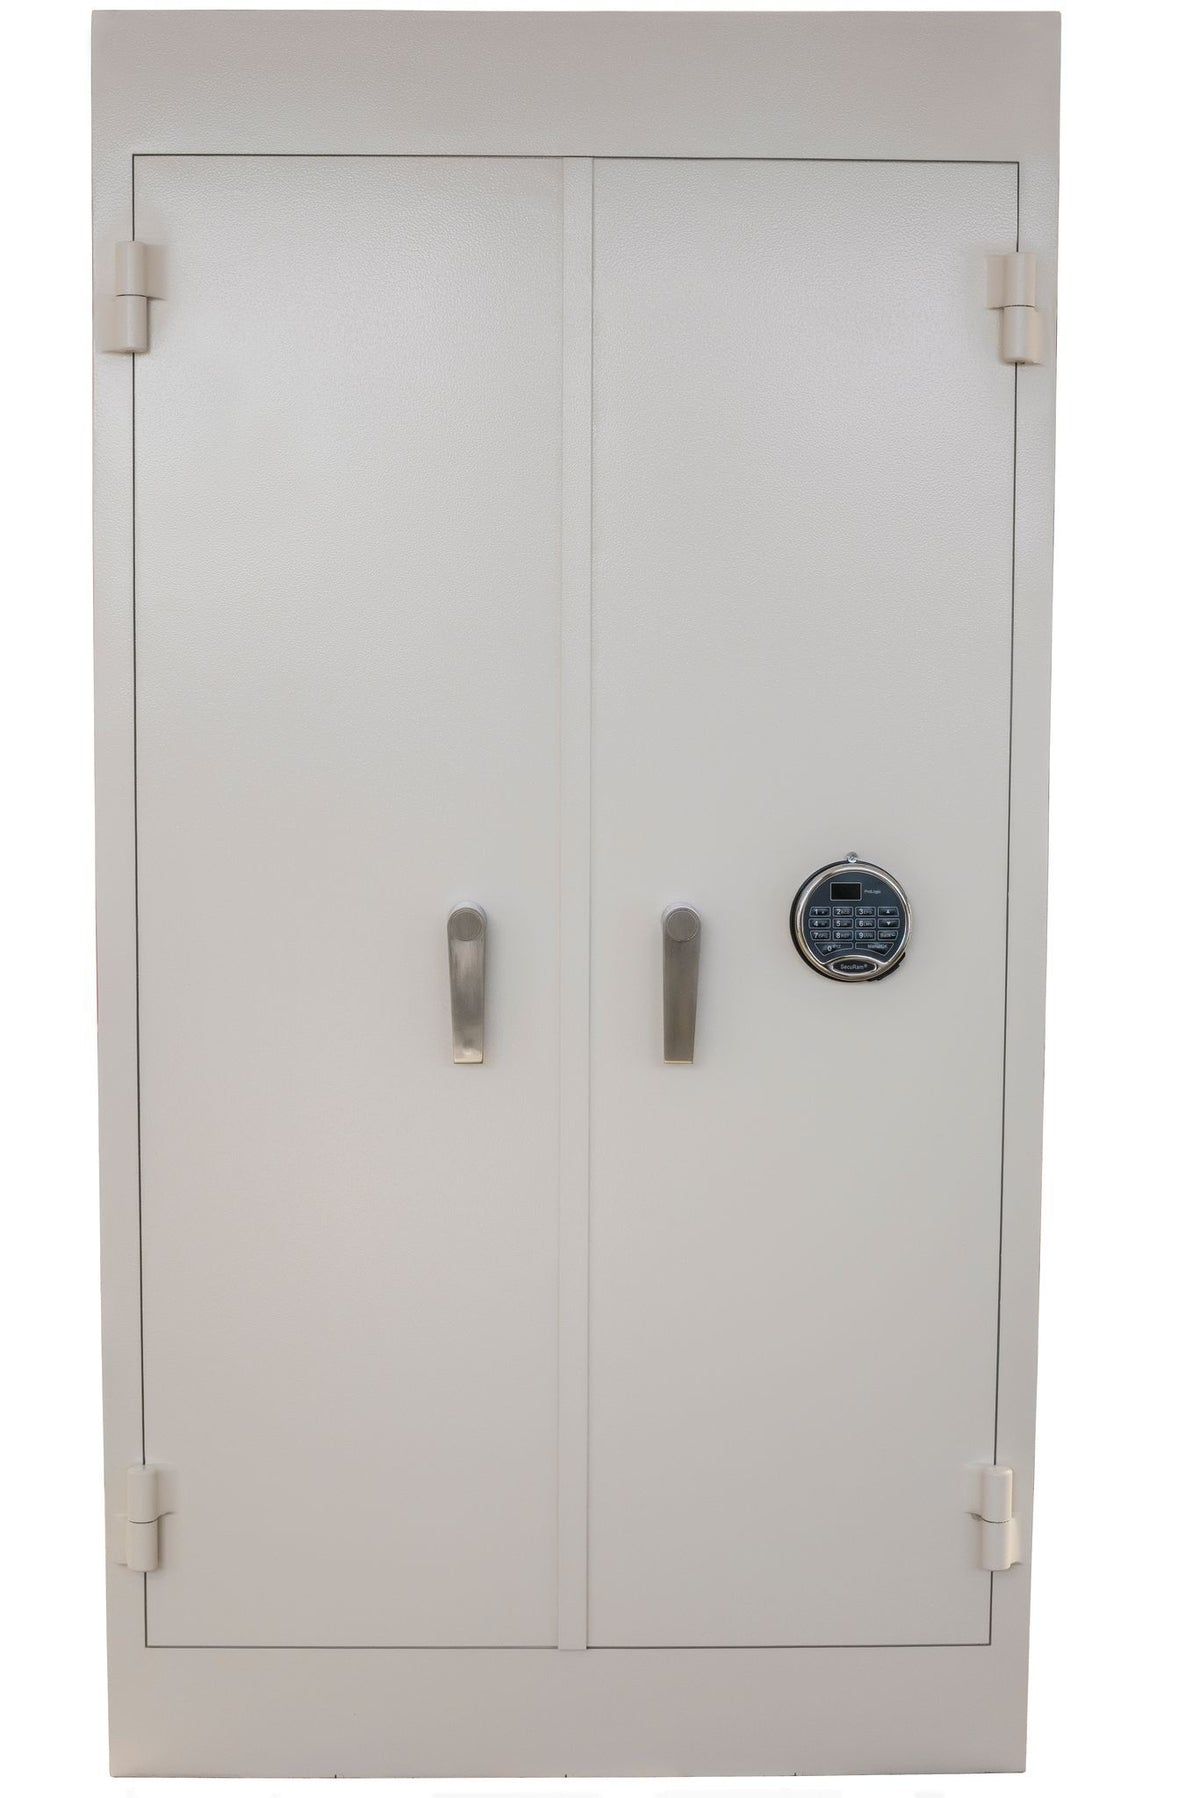 FireKing B6032-FK1 Double Door Pharmacy Safe